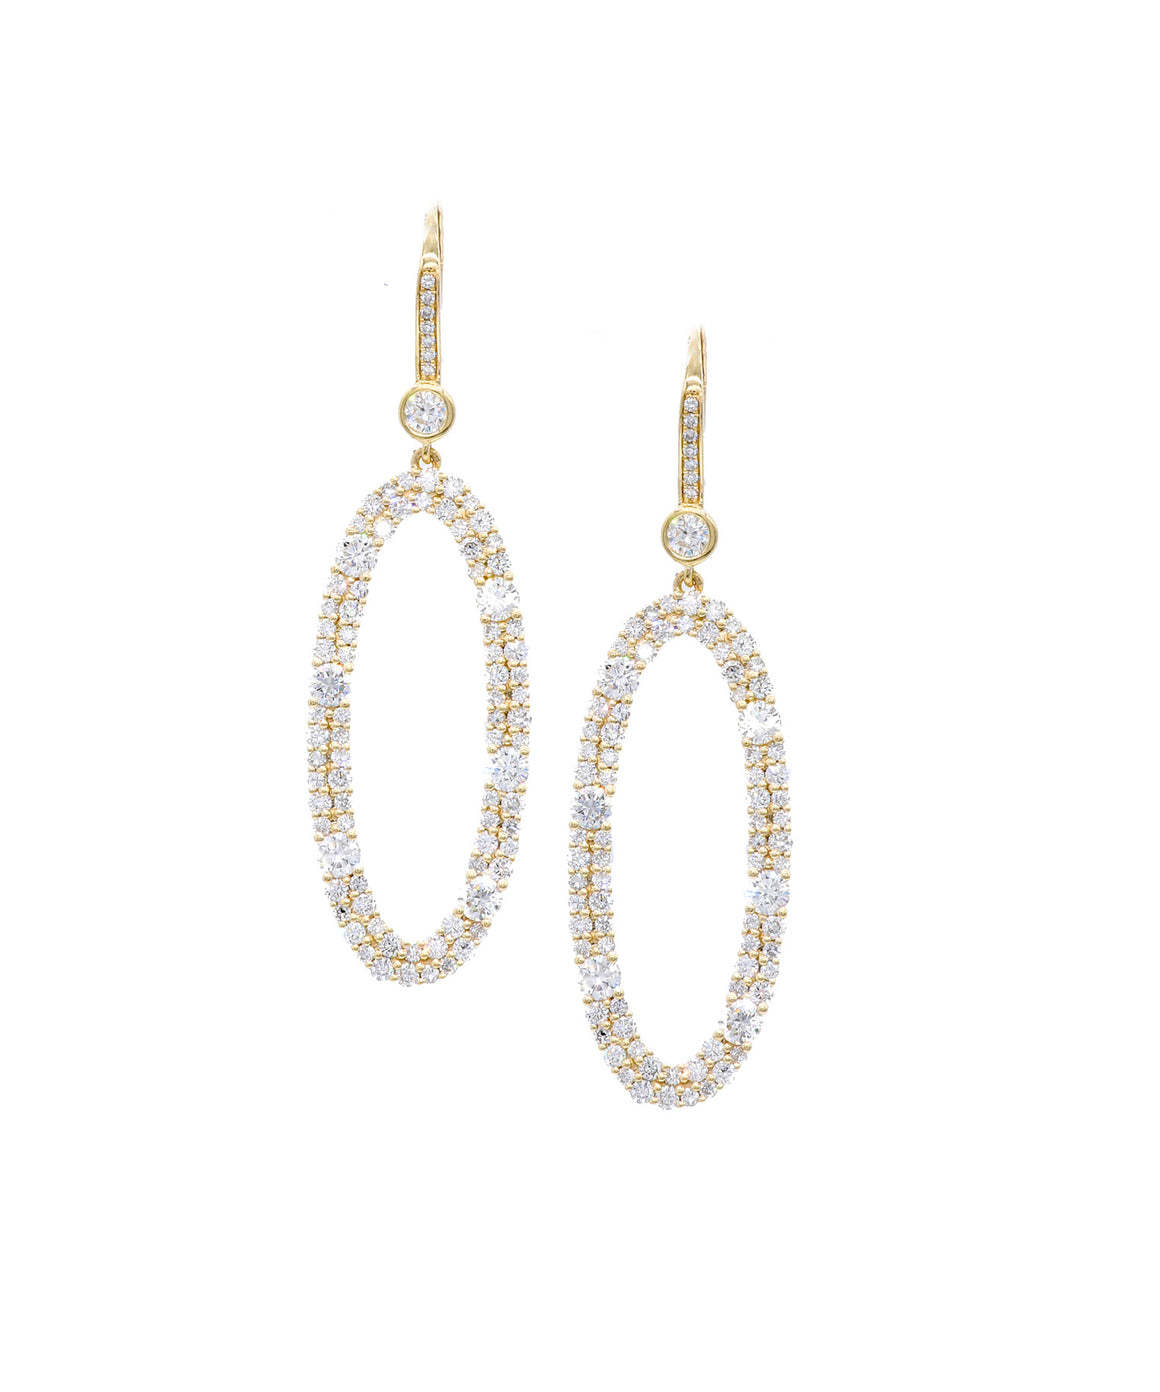 Oval Drop Earrings with Diamonds - Lesley Ann Jewels